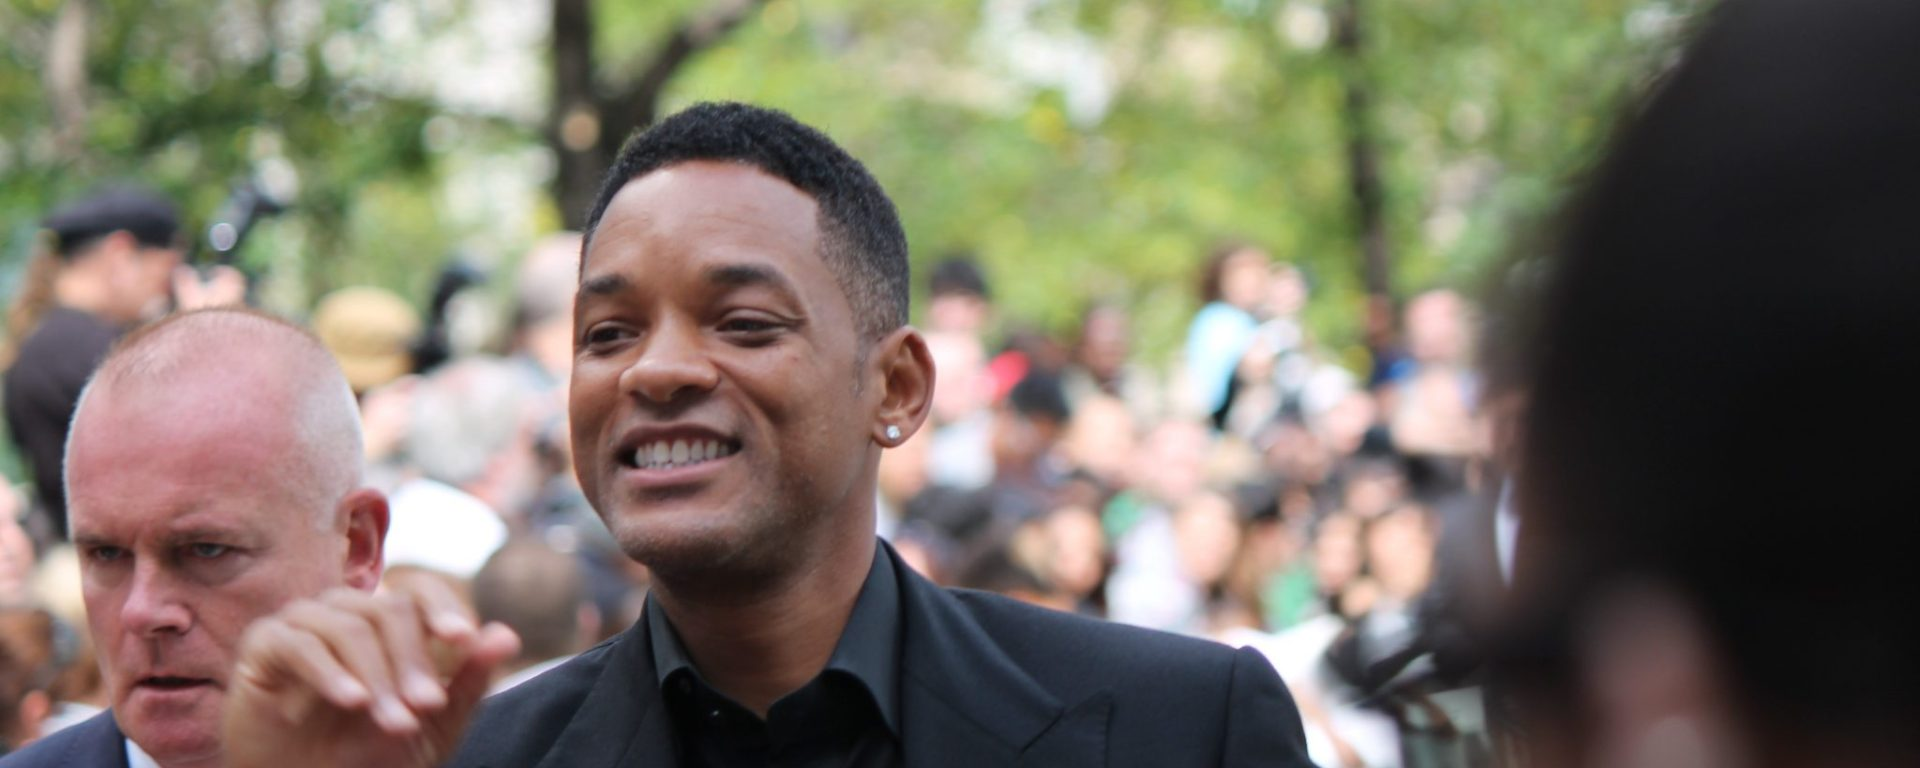 Will-Smith-Toronto-Film-Festival